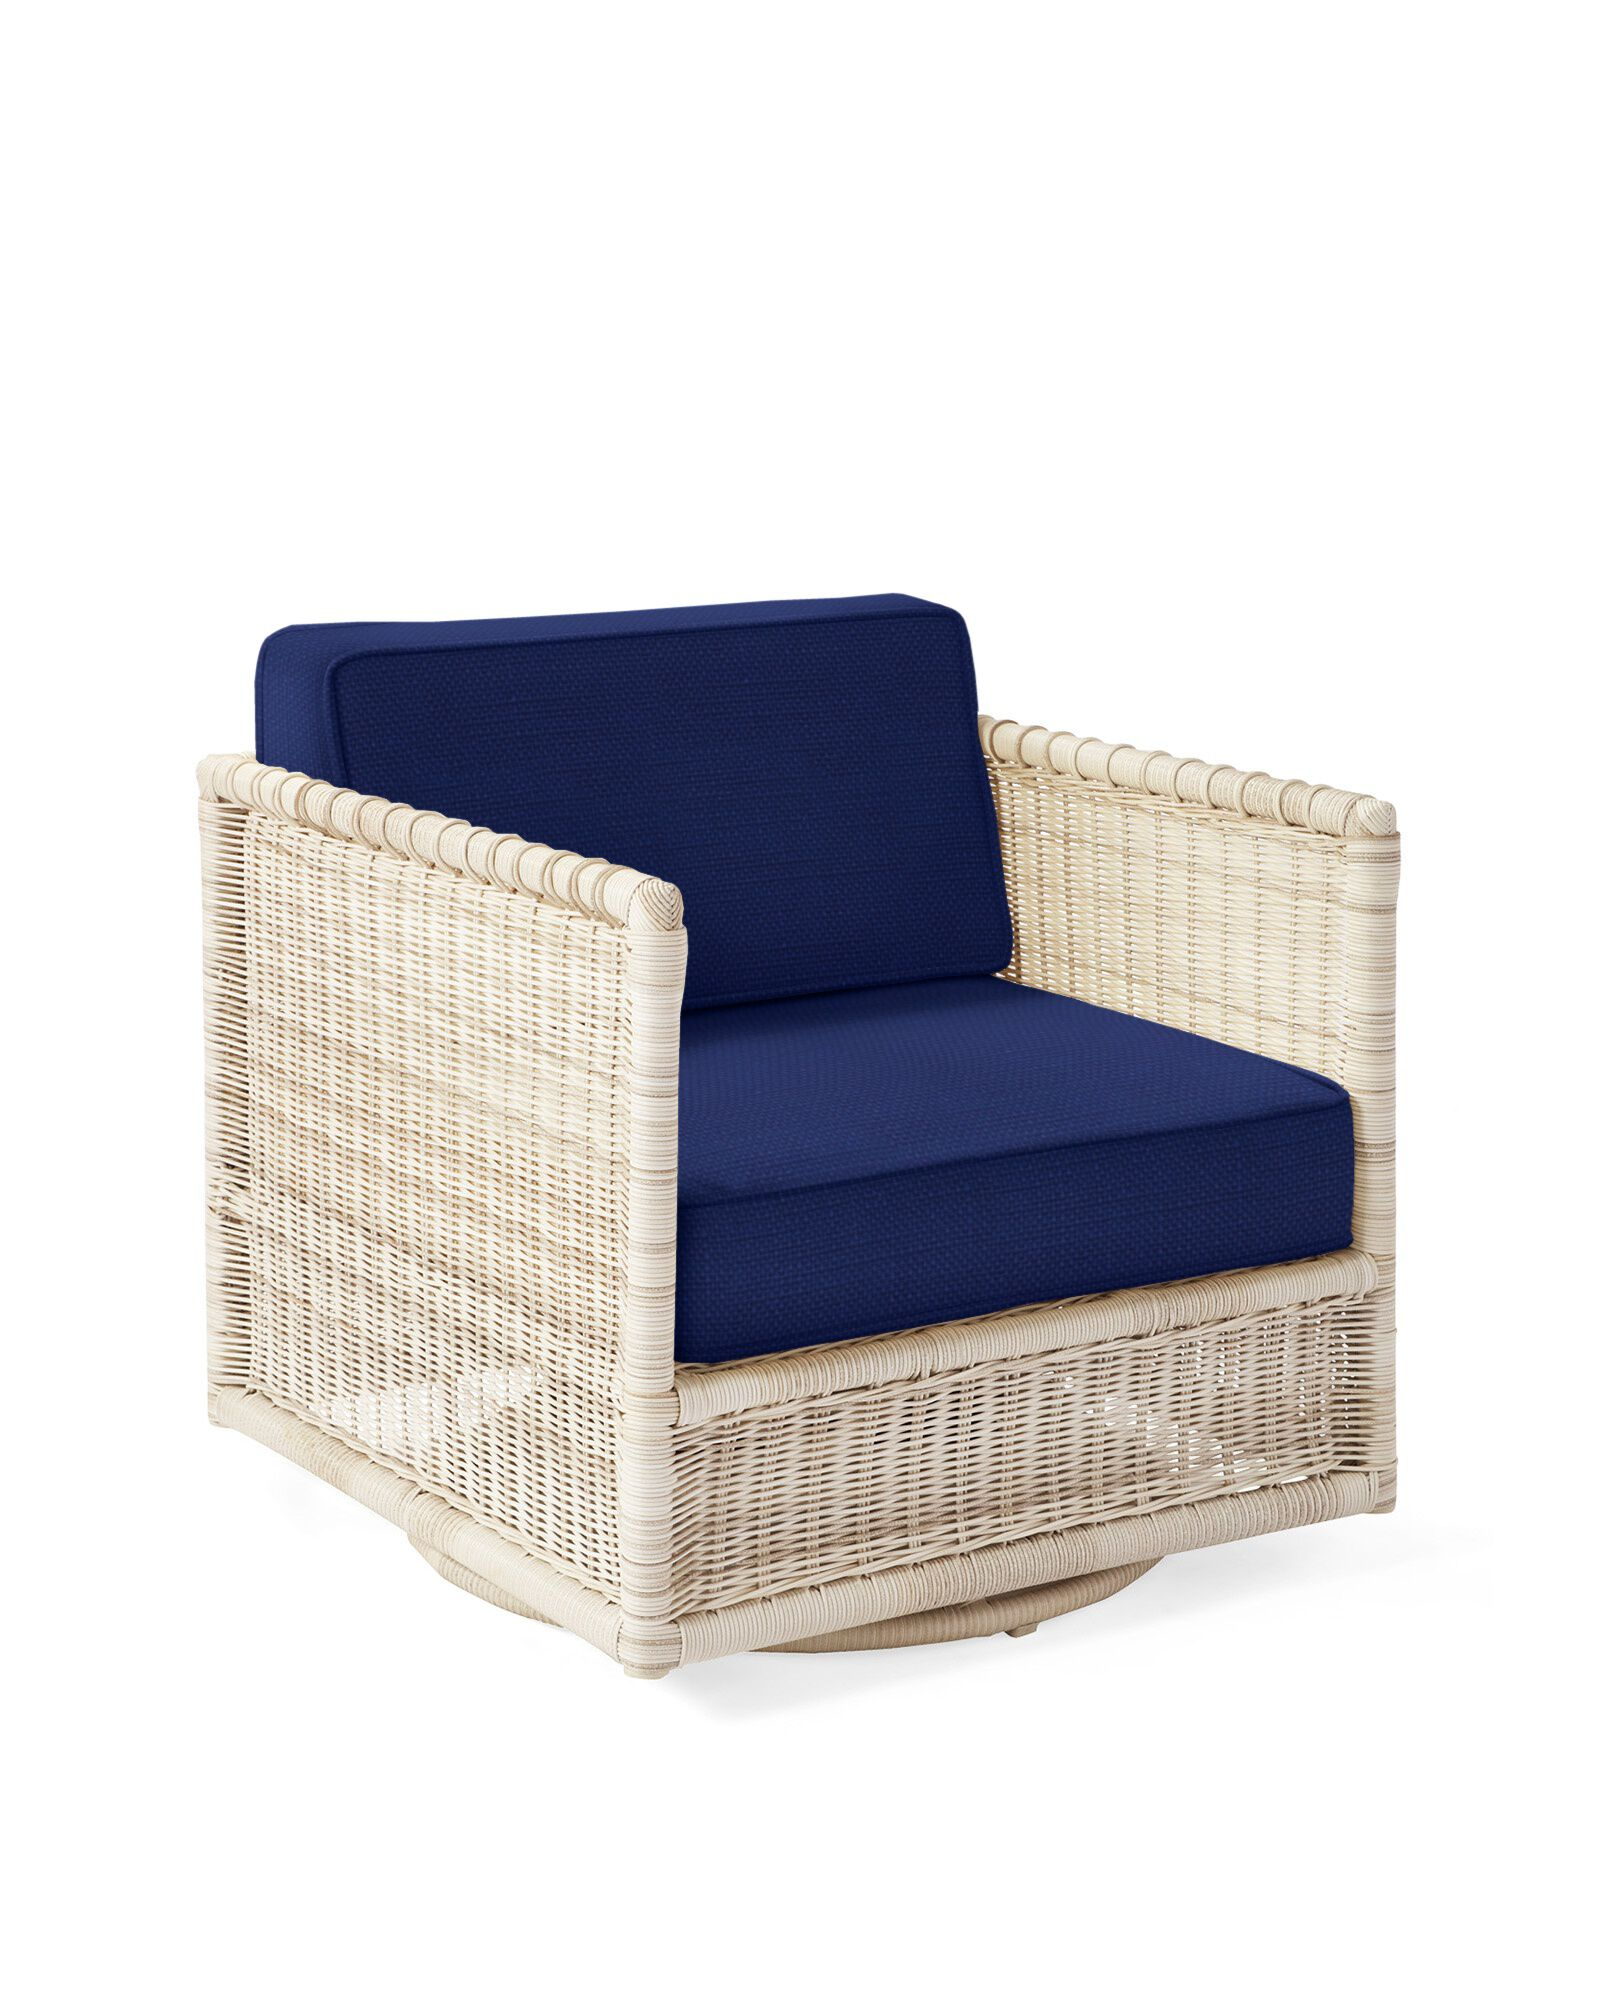 Cushion Cover for Pacifica Swivel Chair, Perennials Basketweave Navy